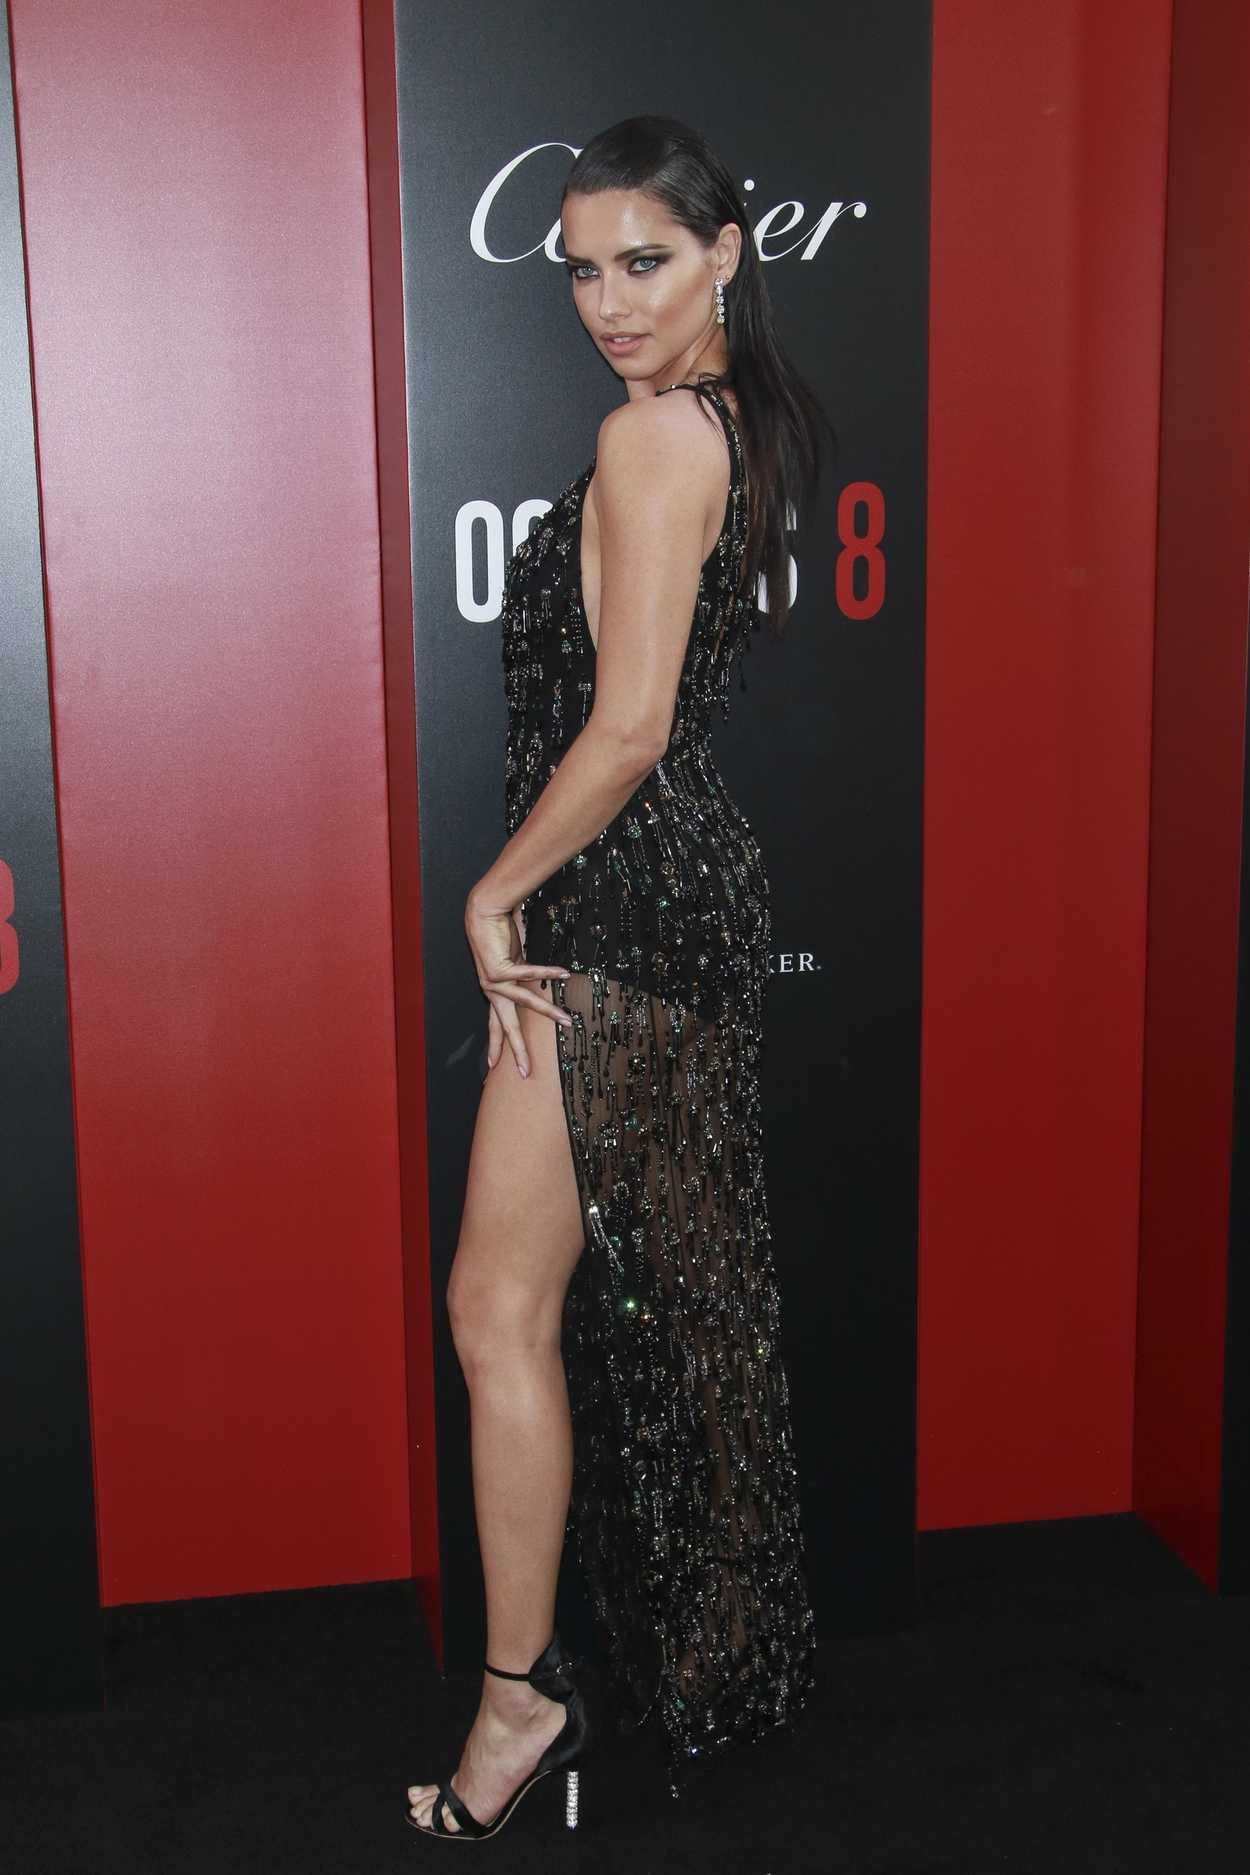 Adriana Lima At Ocean S 8 Premiere In New York 06 05 2018